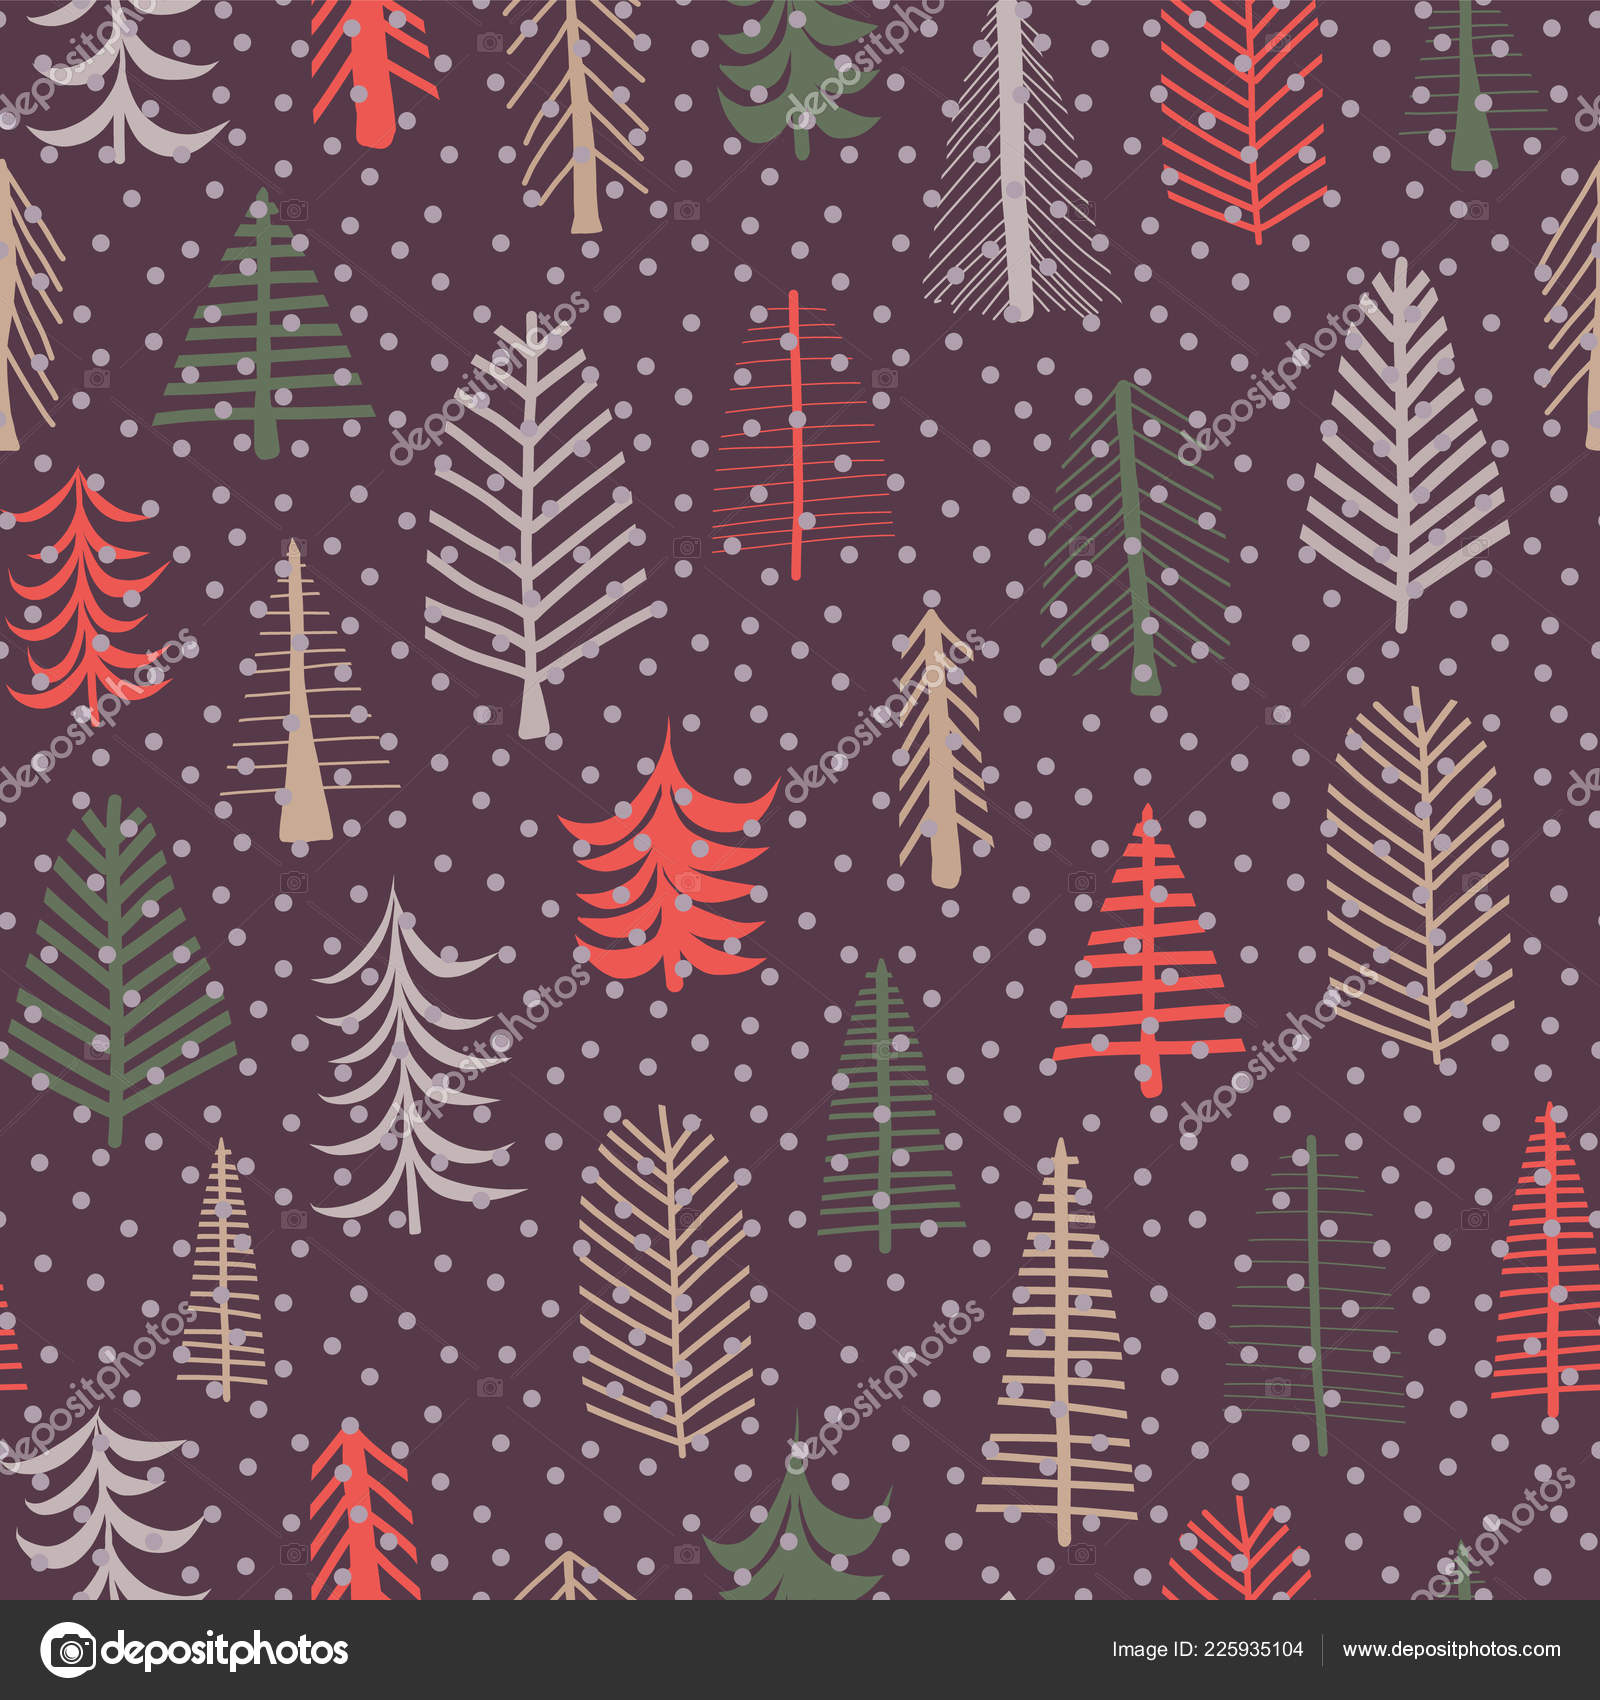 Christmas Tree Seamless Pattern Repeat Tile Green Brown